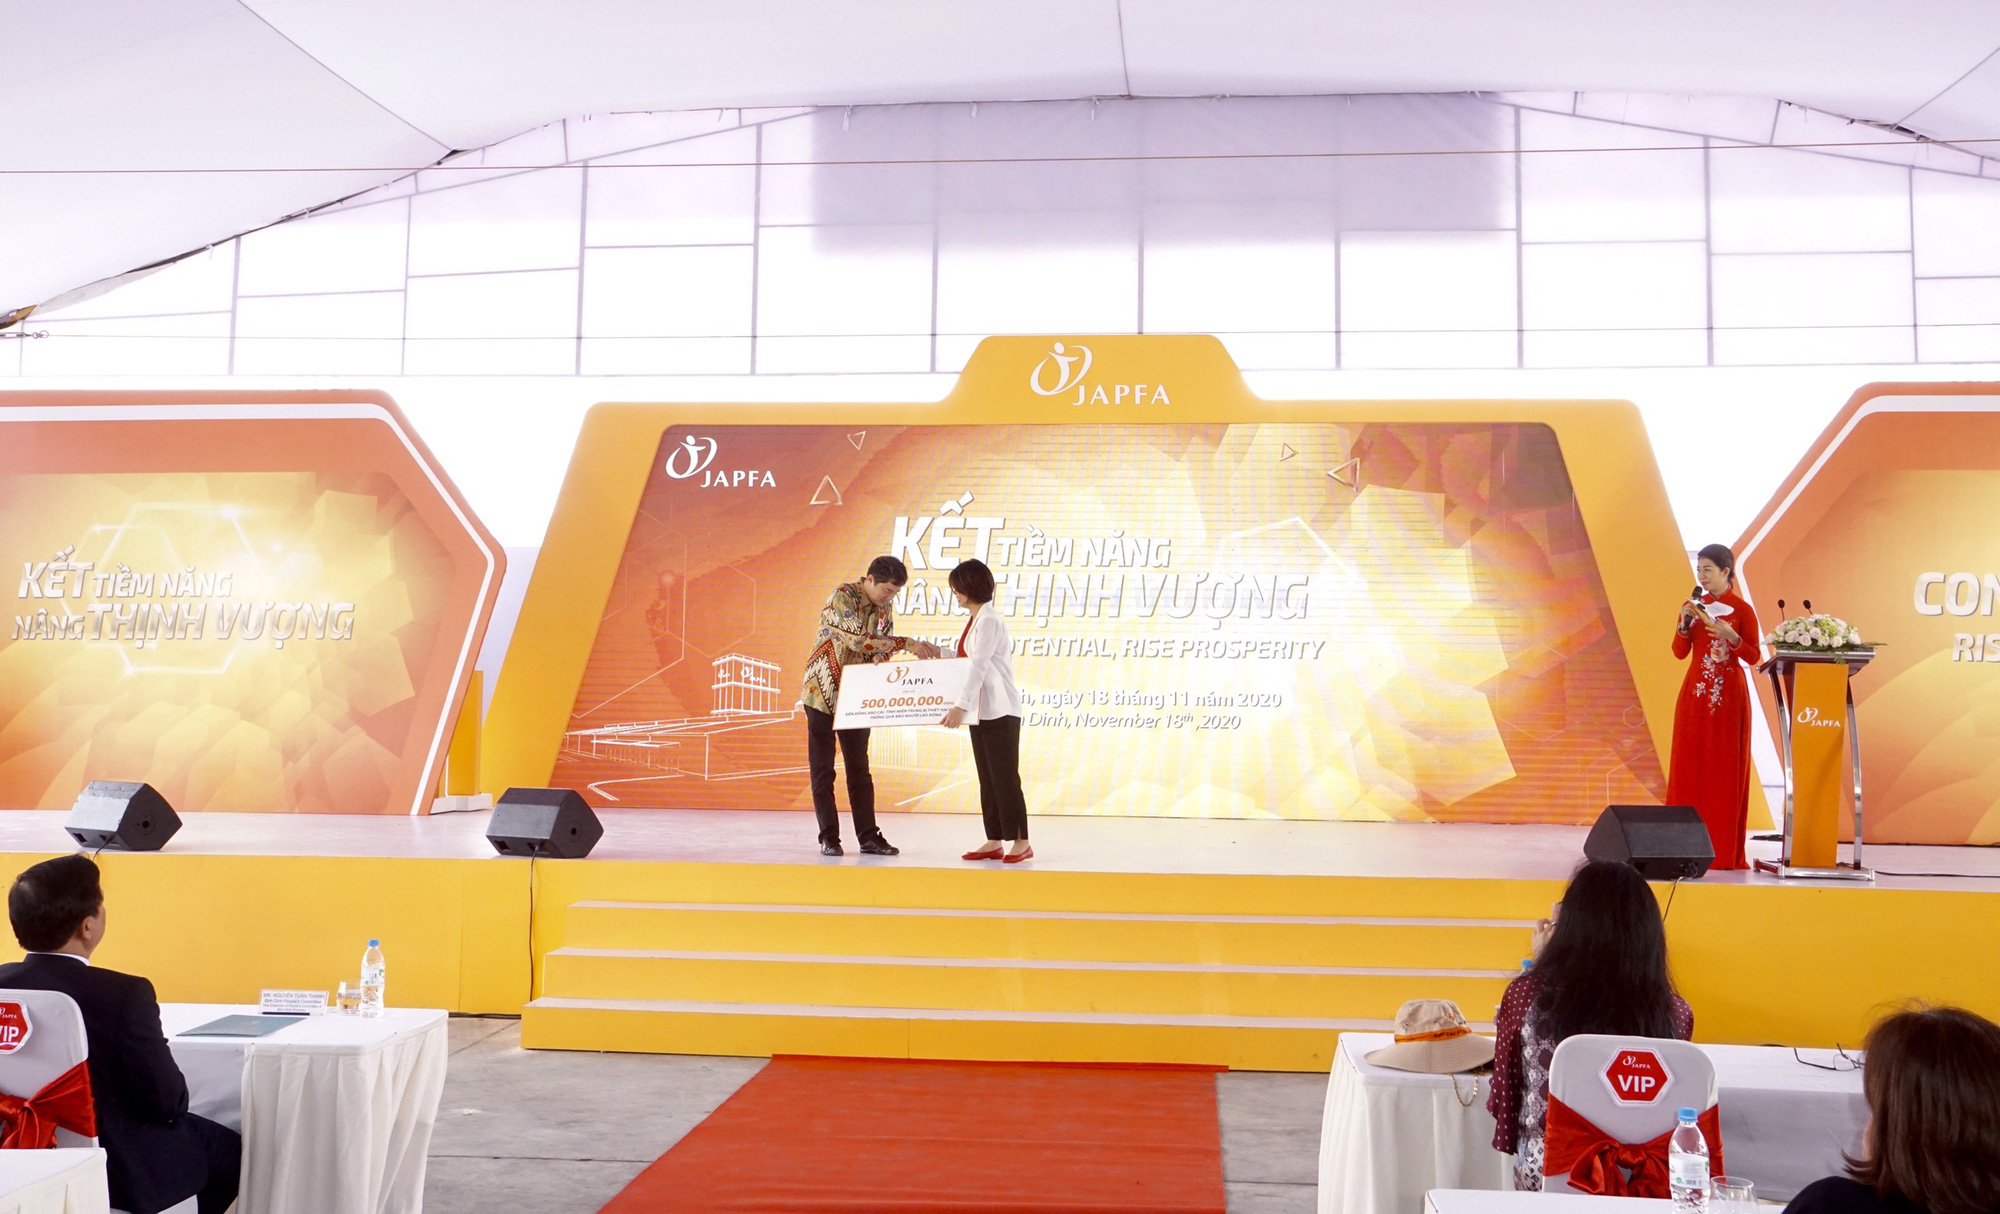 Japfa Vietnam inaugurated a 300 billion VND animal feed factory in Binh Dinh - Photo 5.